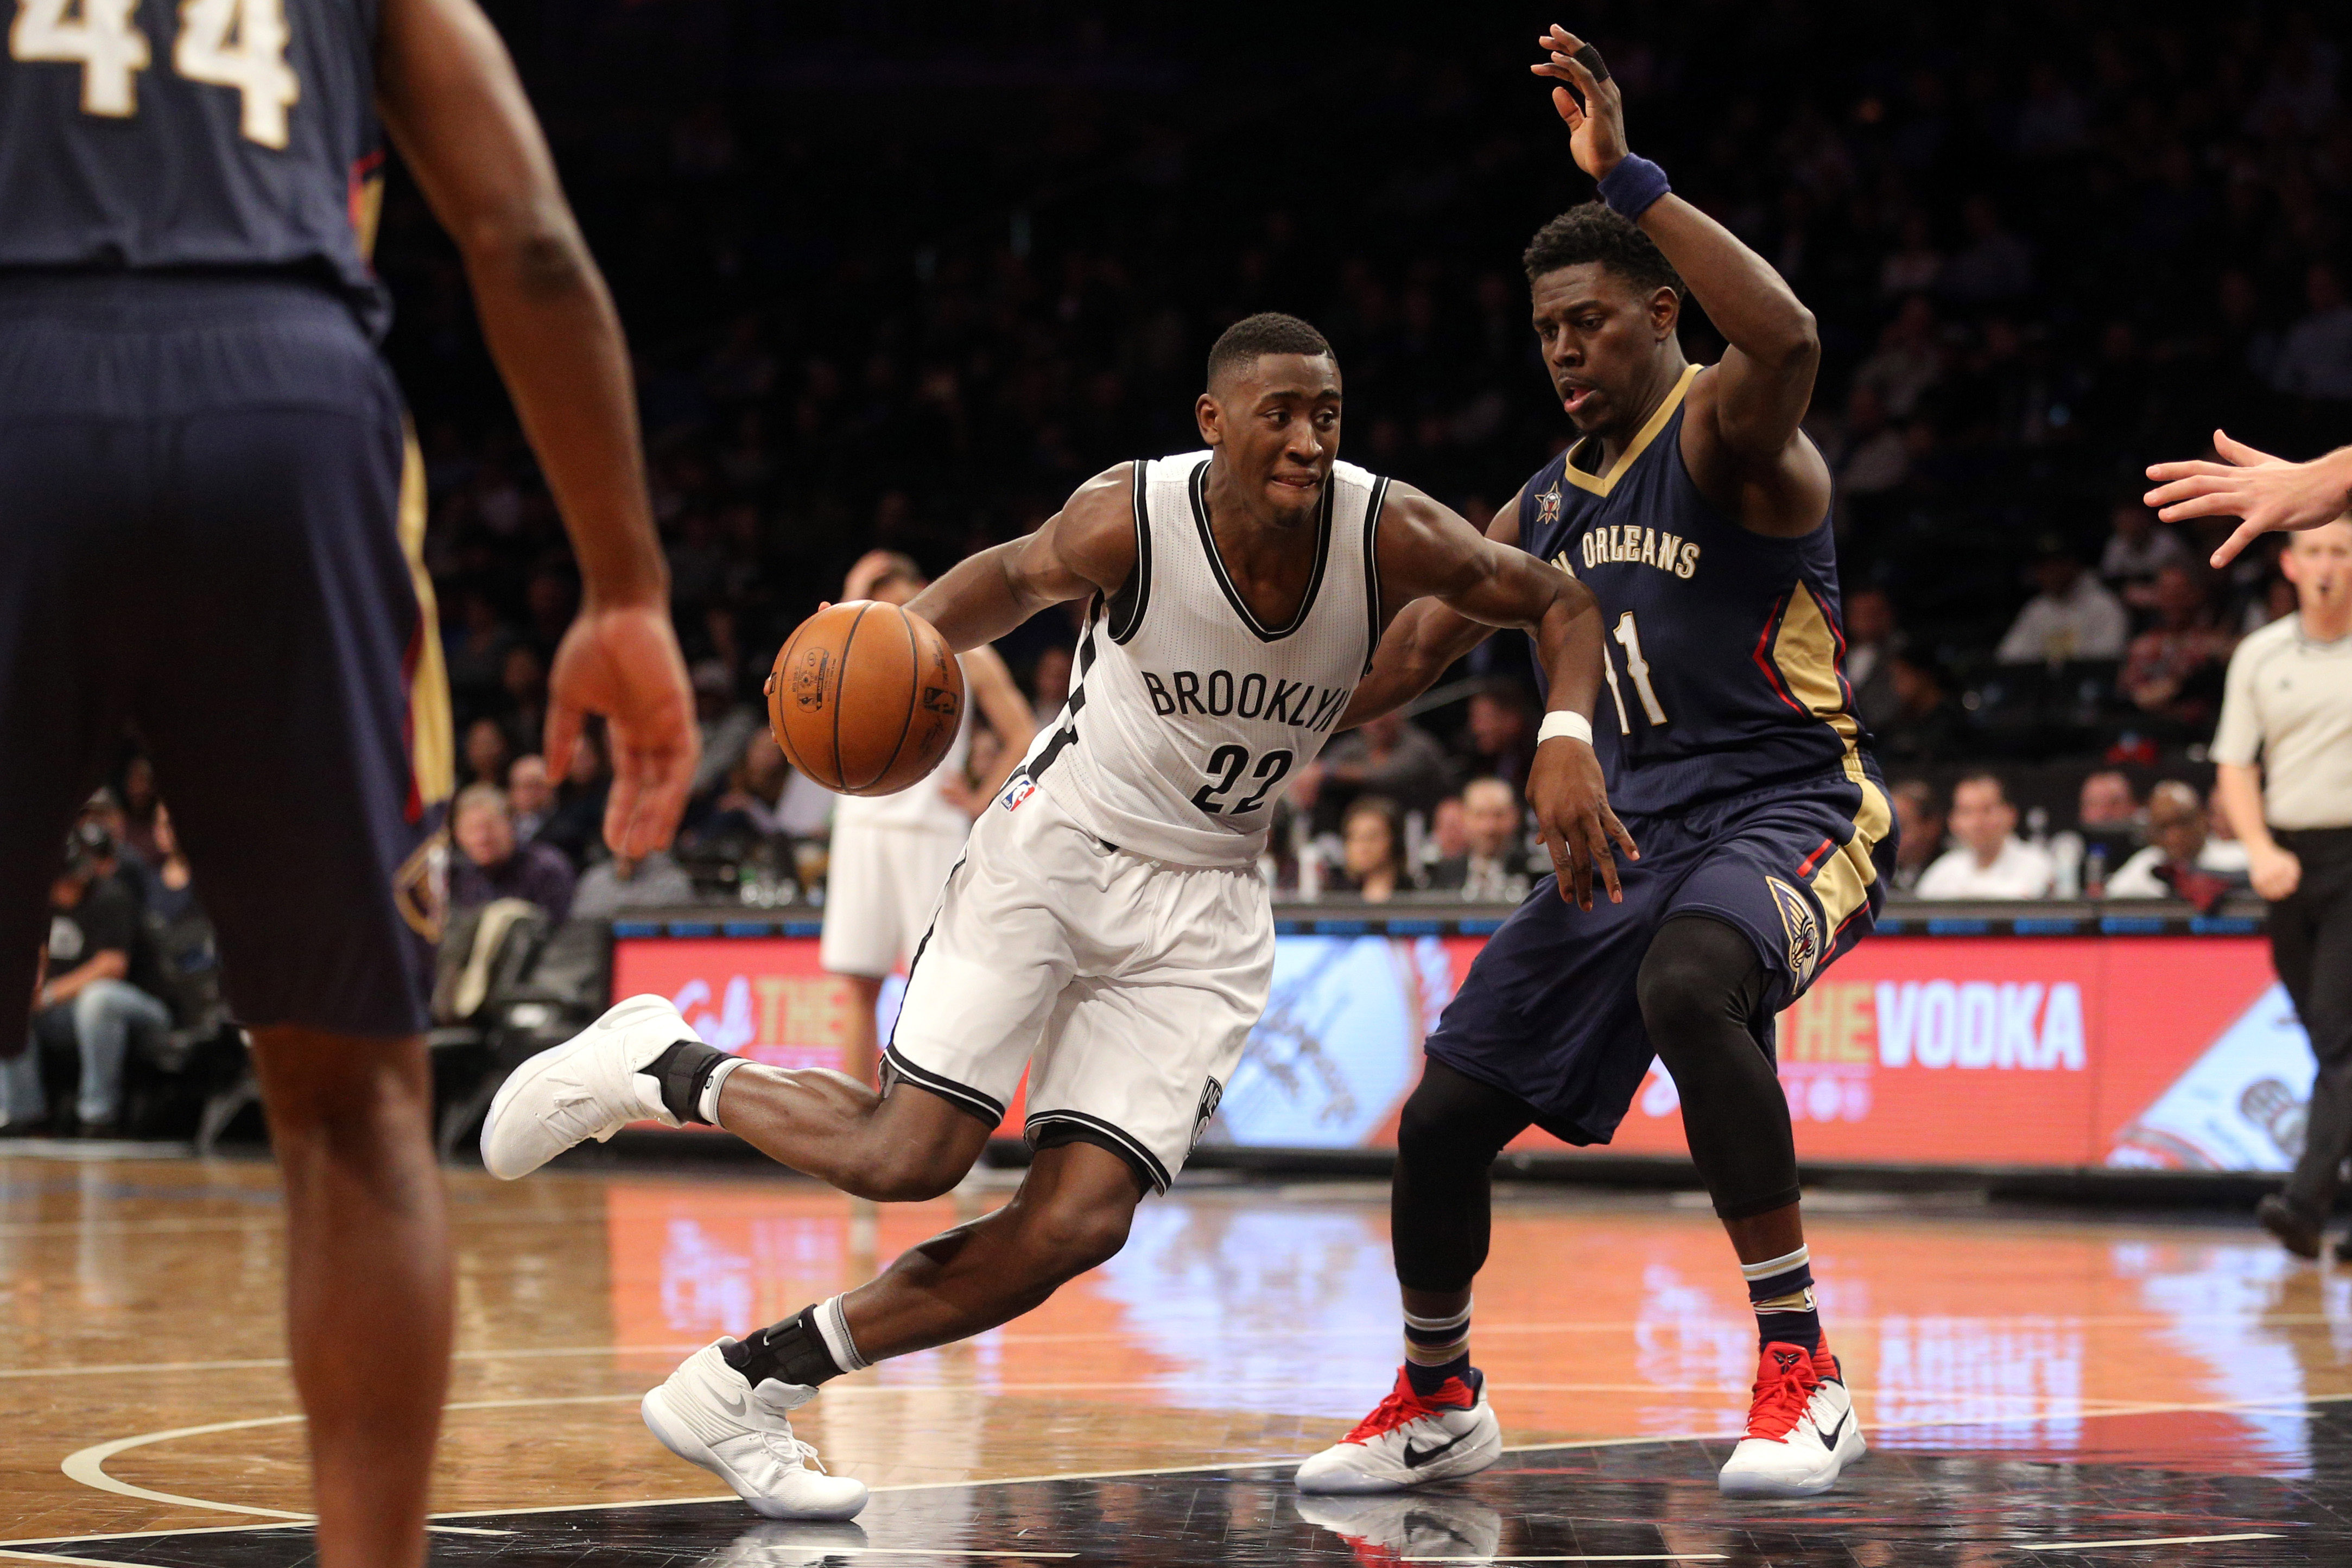 9806698-nba-new-orleans-pelicans-at-brooklyn-nets